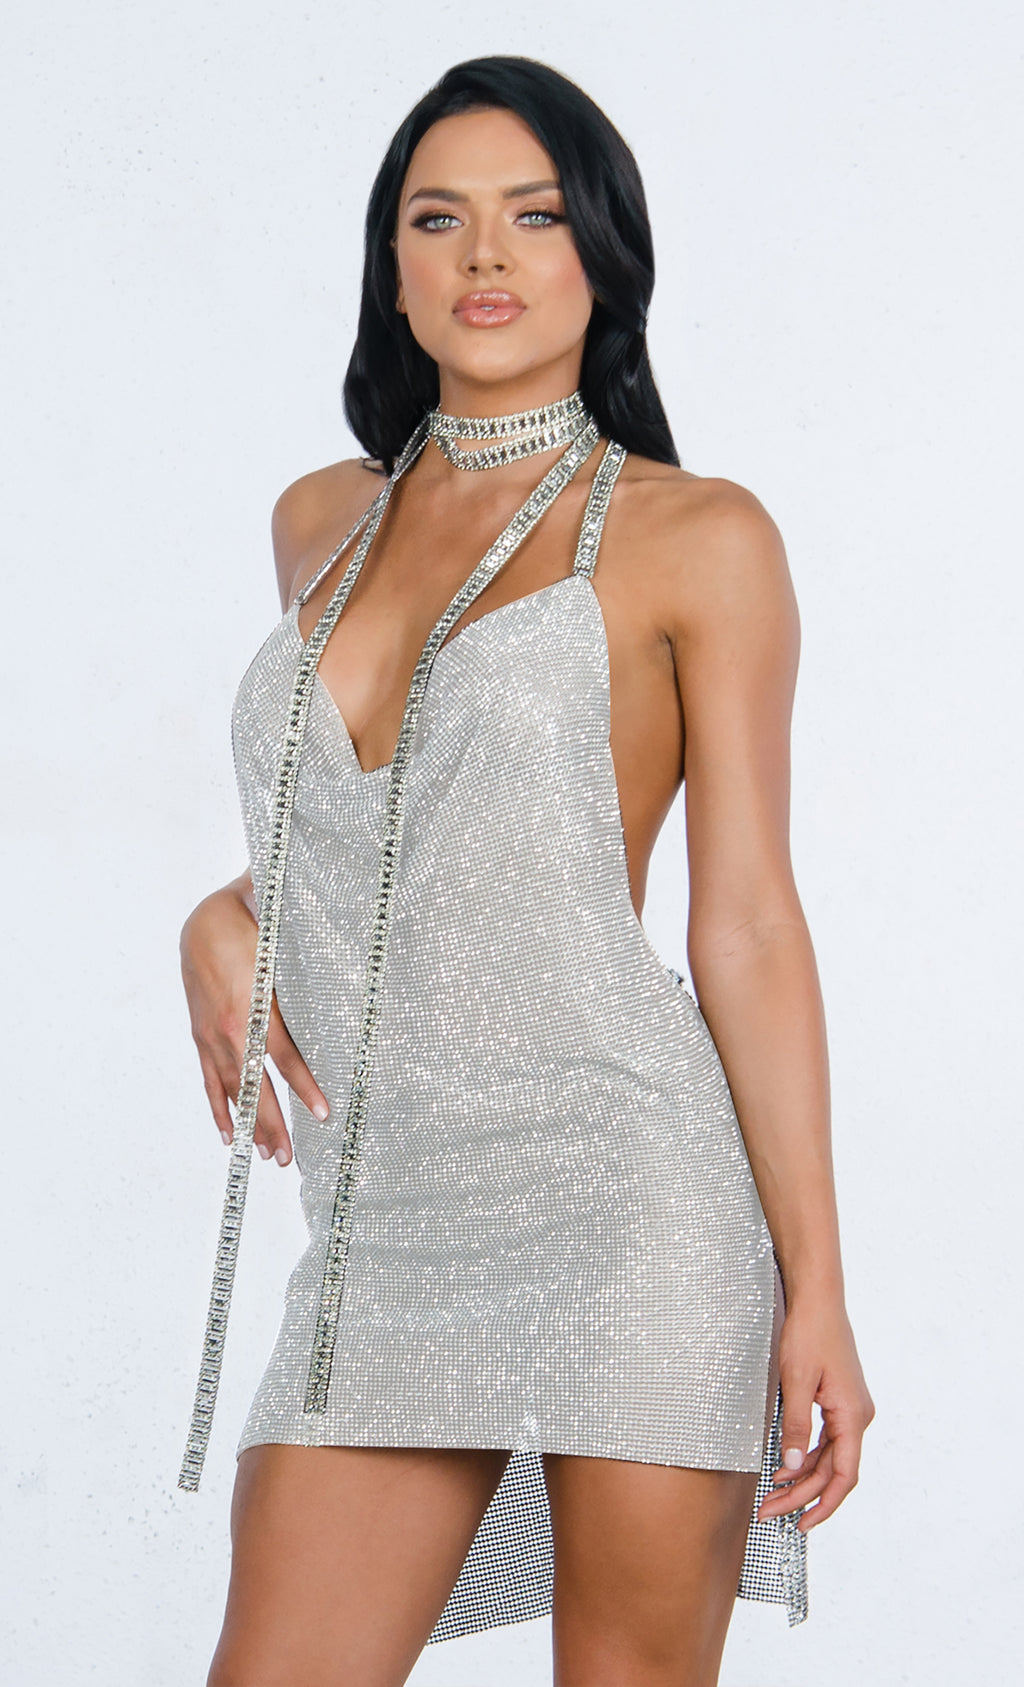 Indie XO Red Carpet Ready Silver Diamanté Metallic Swarovski Crystal Rhinestone Mesh Baguette Cut Halter Chain Backless V Neck Mini Dress - Sold Out